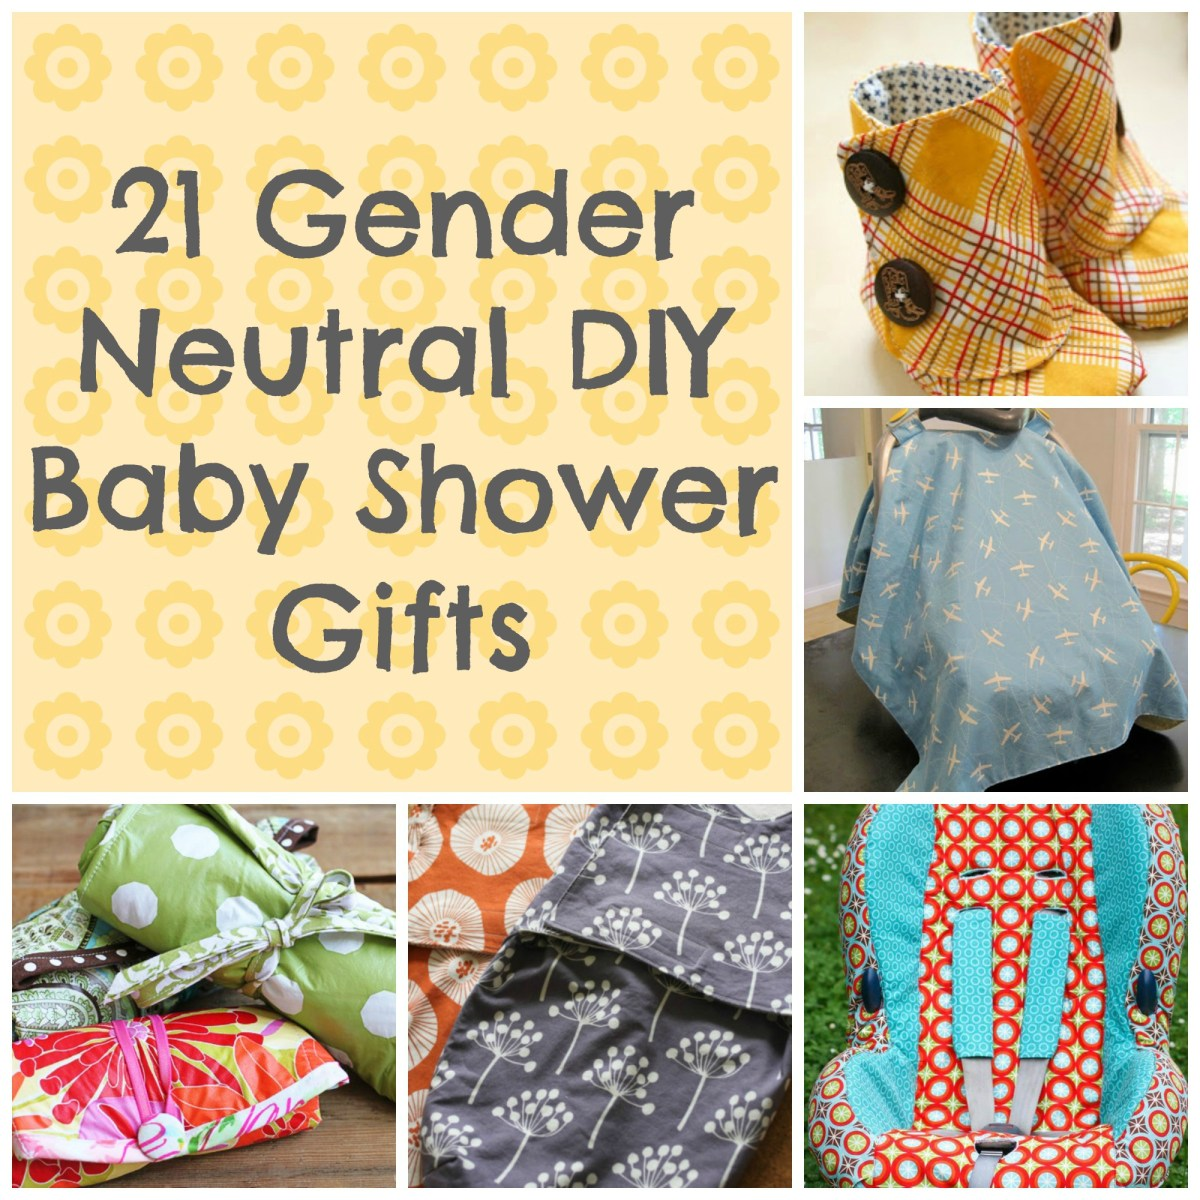 awesome diy baby shower gift ideas that are gender neutral, Baby shower invitation